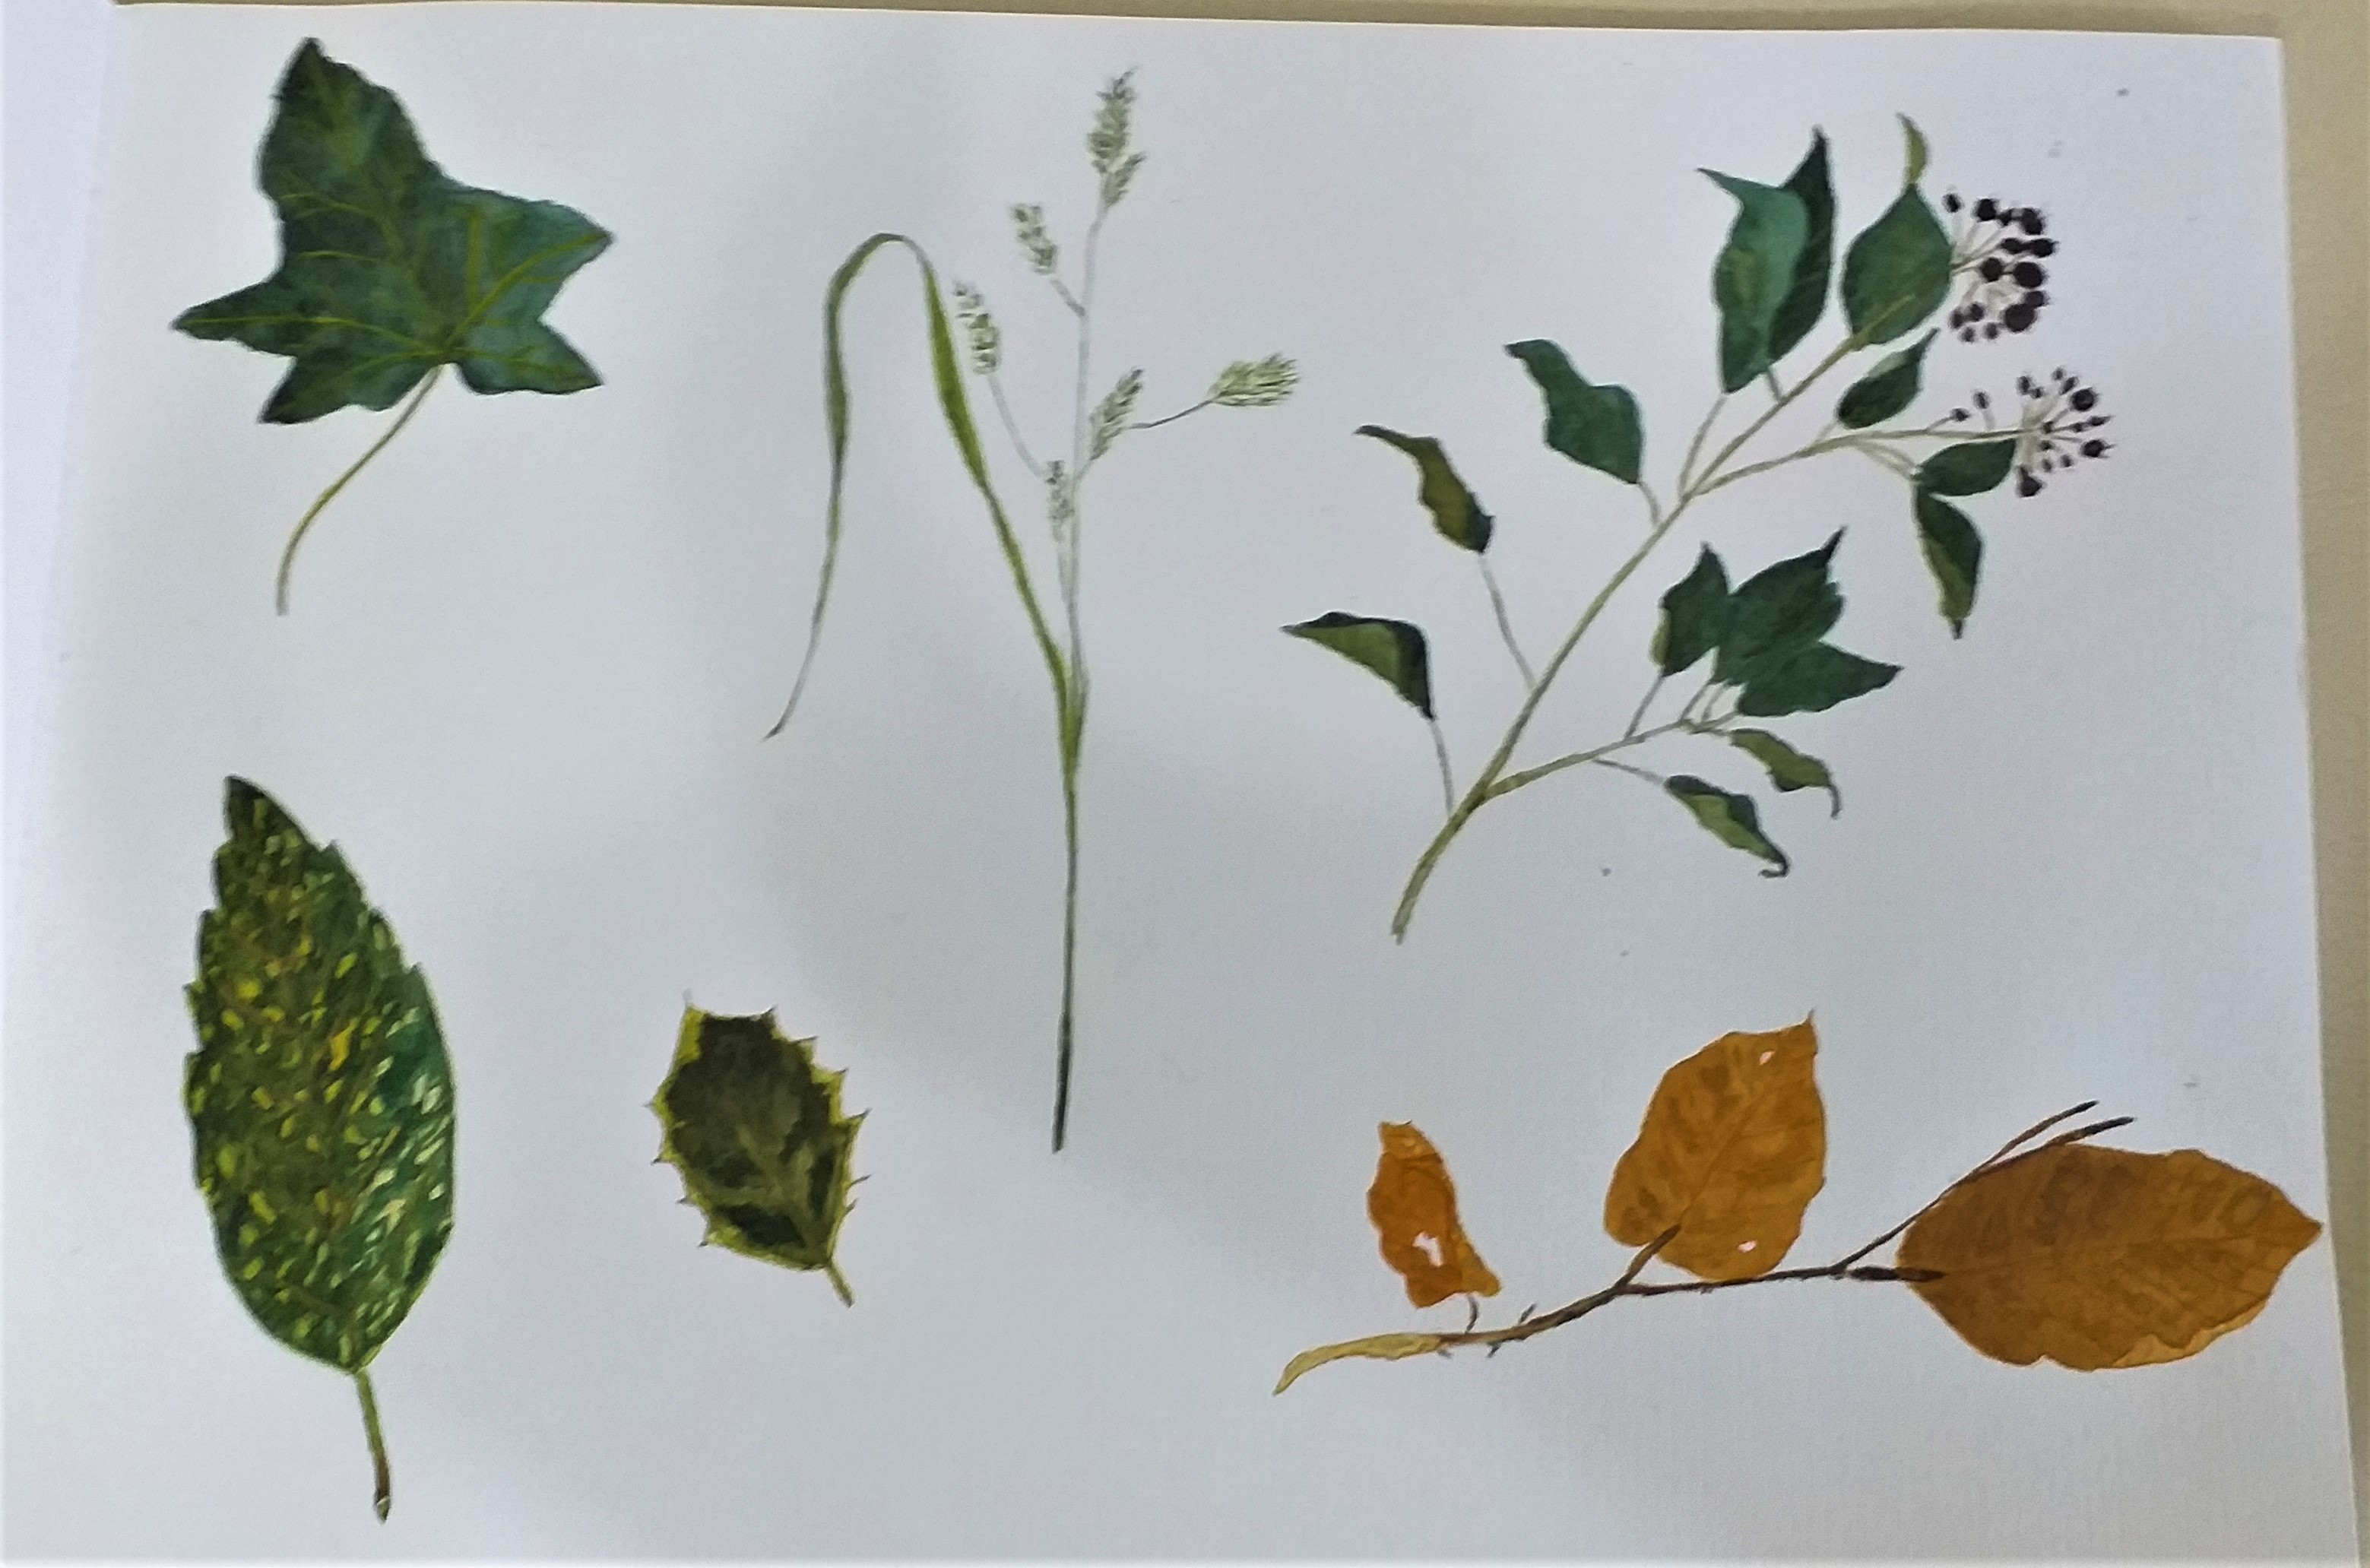 Lovely botanical drawings and painting created at Art classes in Worcestershire